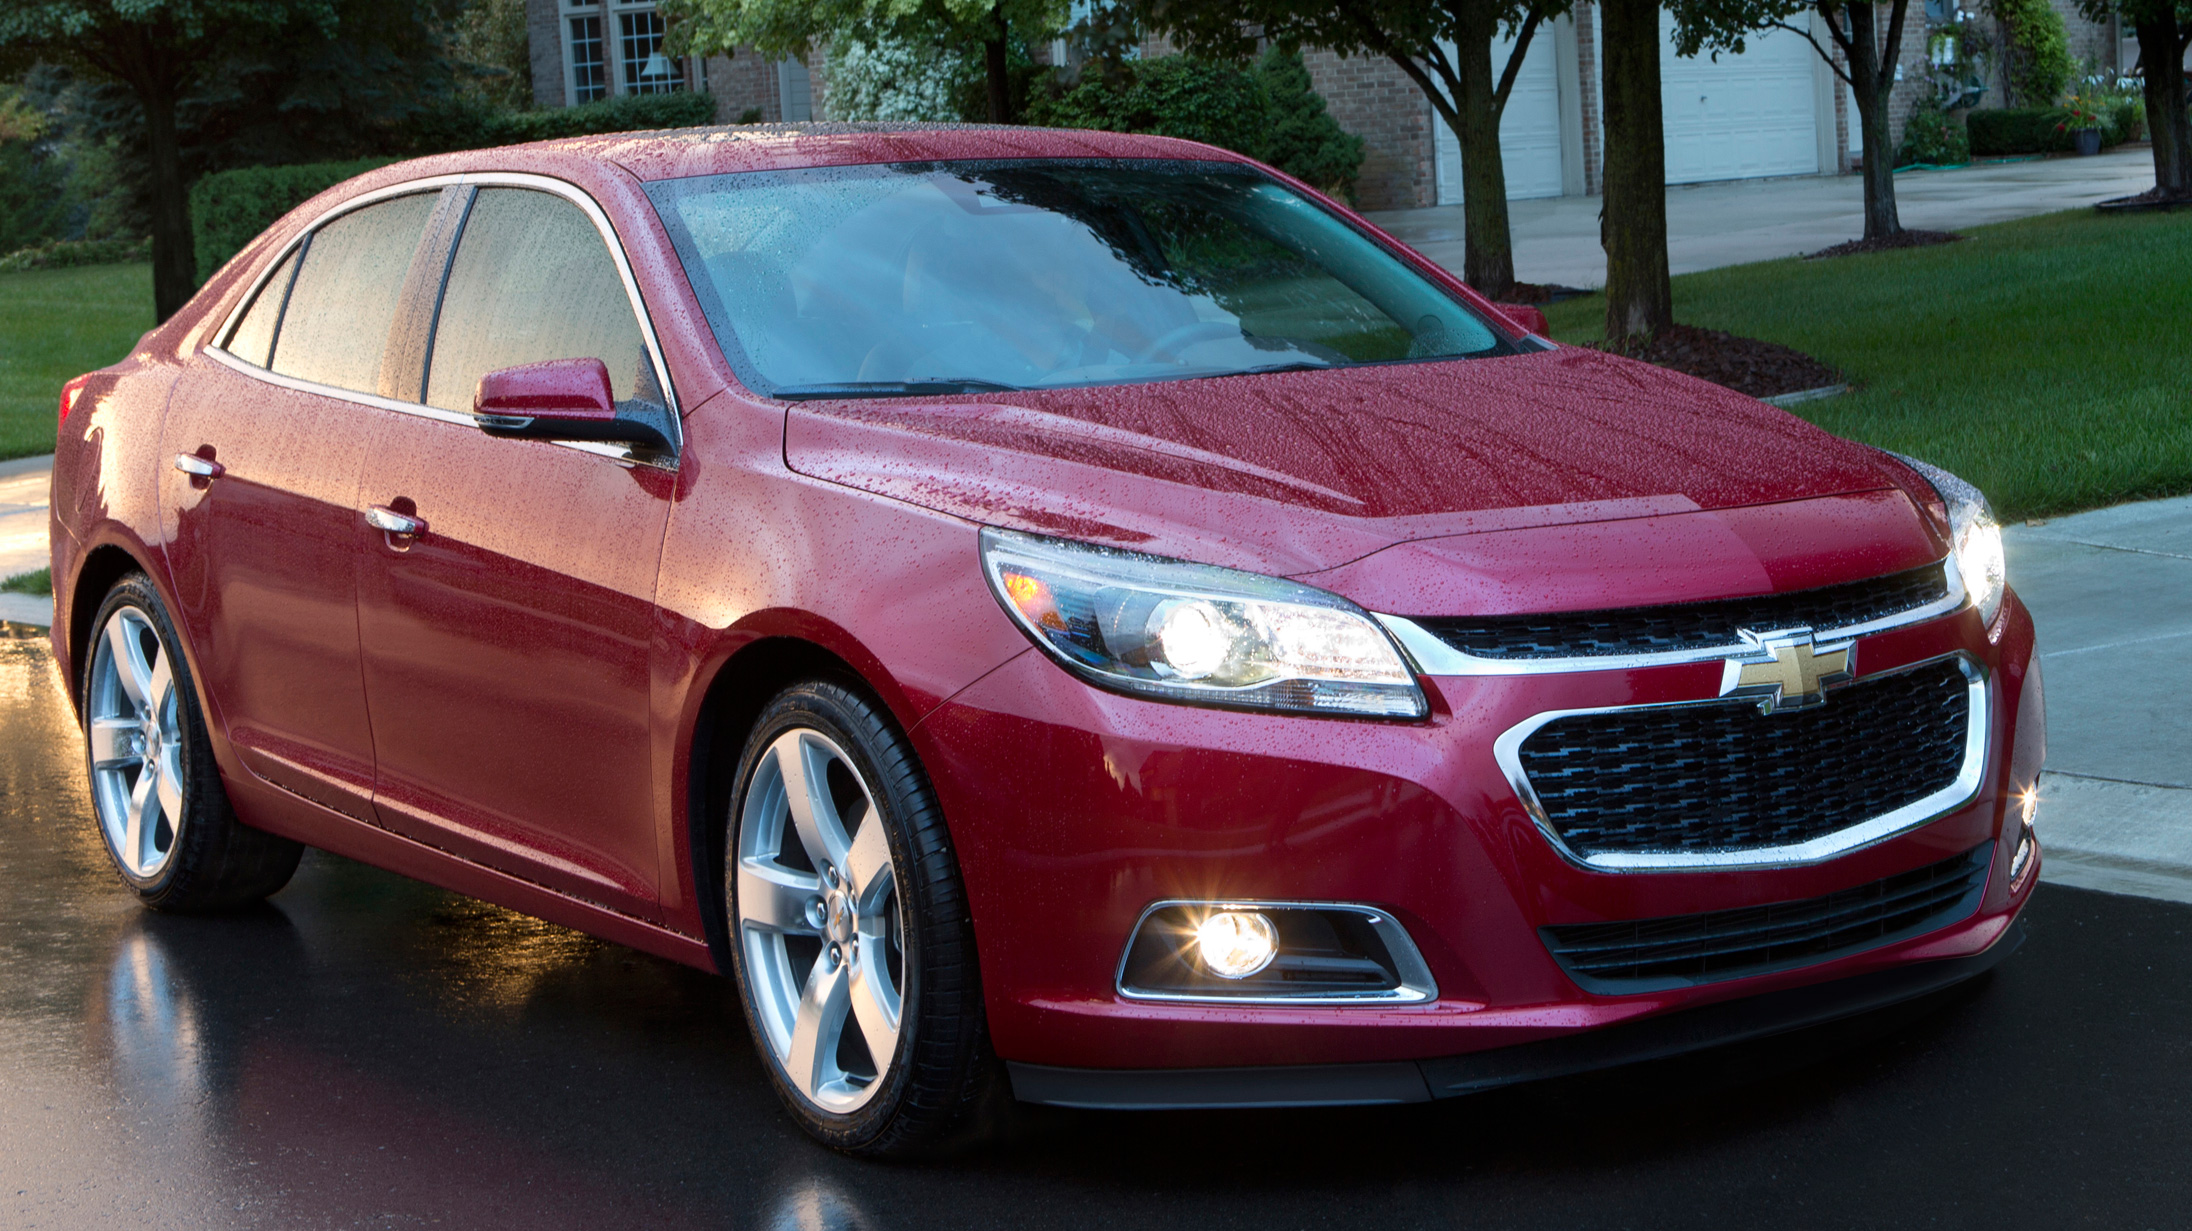 gm recalls 2 7 million u s vehicles for issues including brake2004 12 chevrolet malibus have been recalled to modify the brake lamp wiring harness